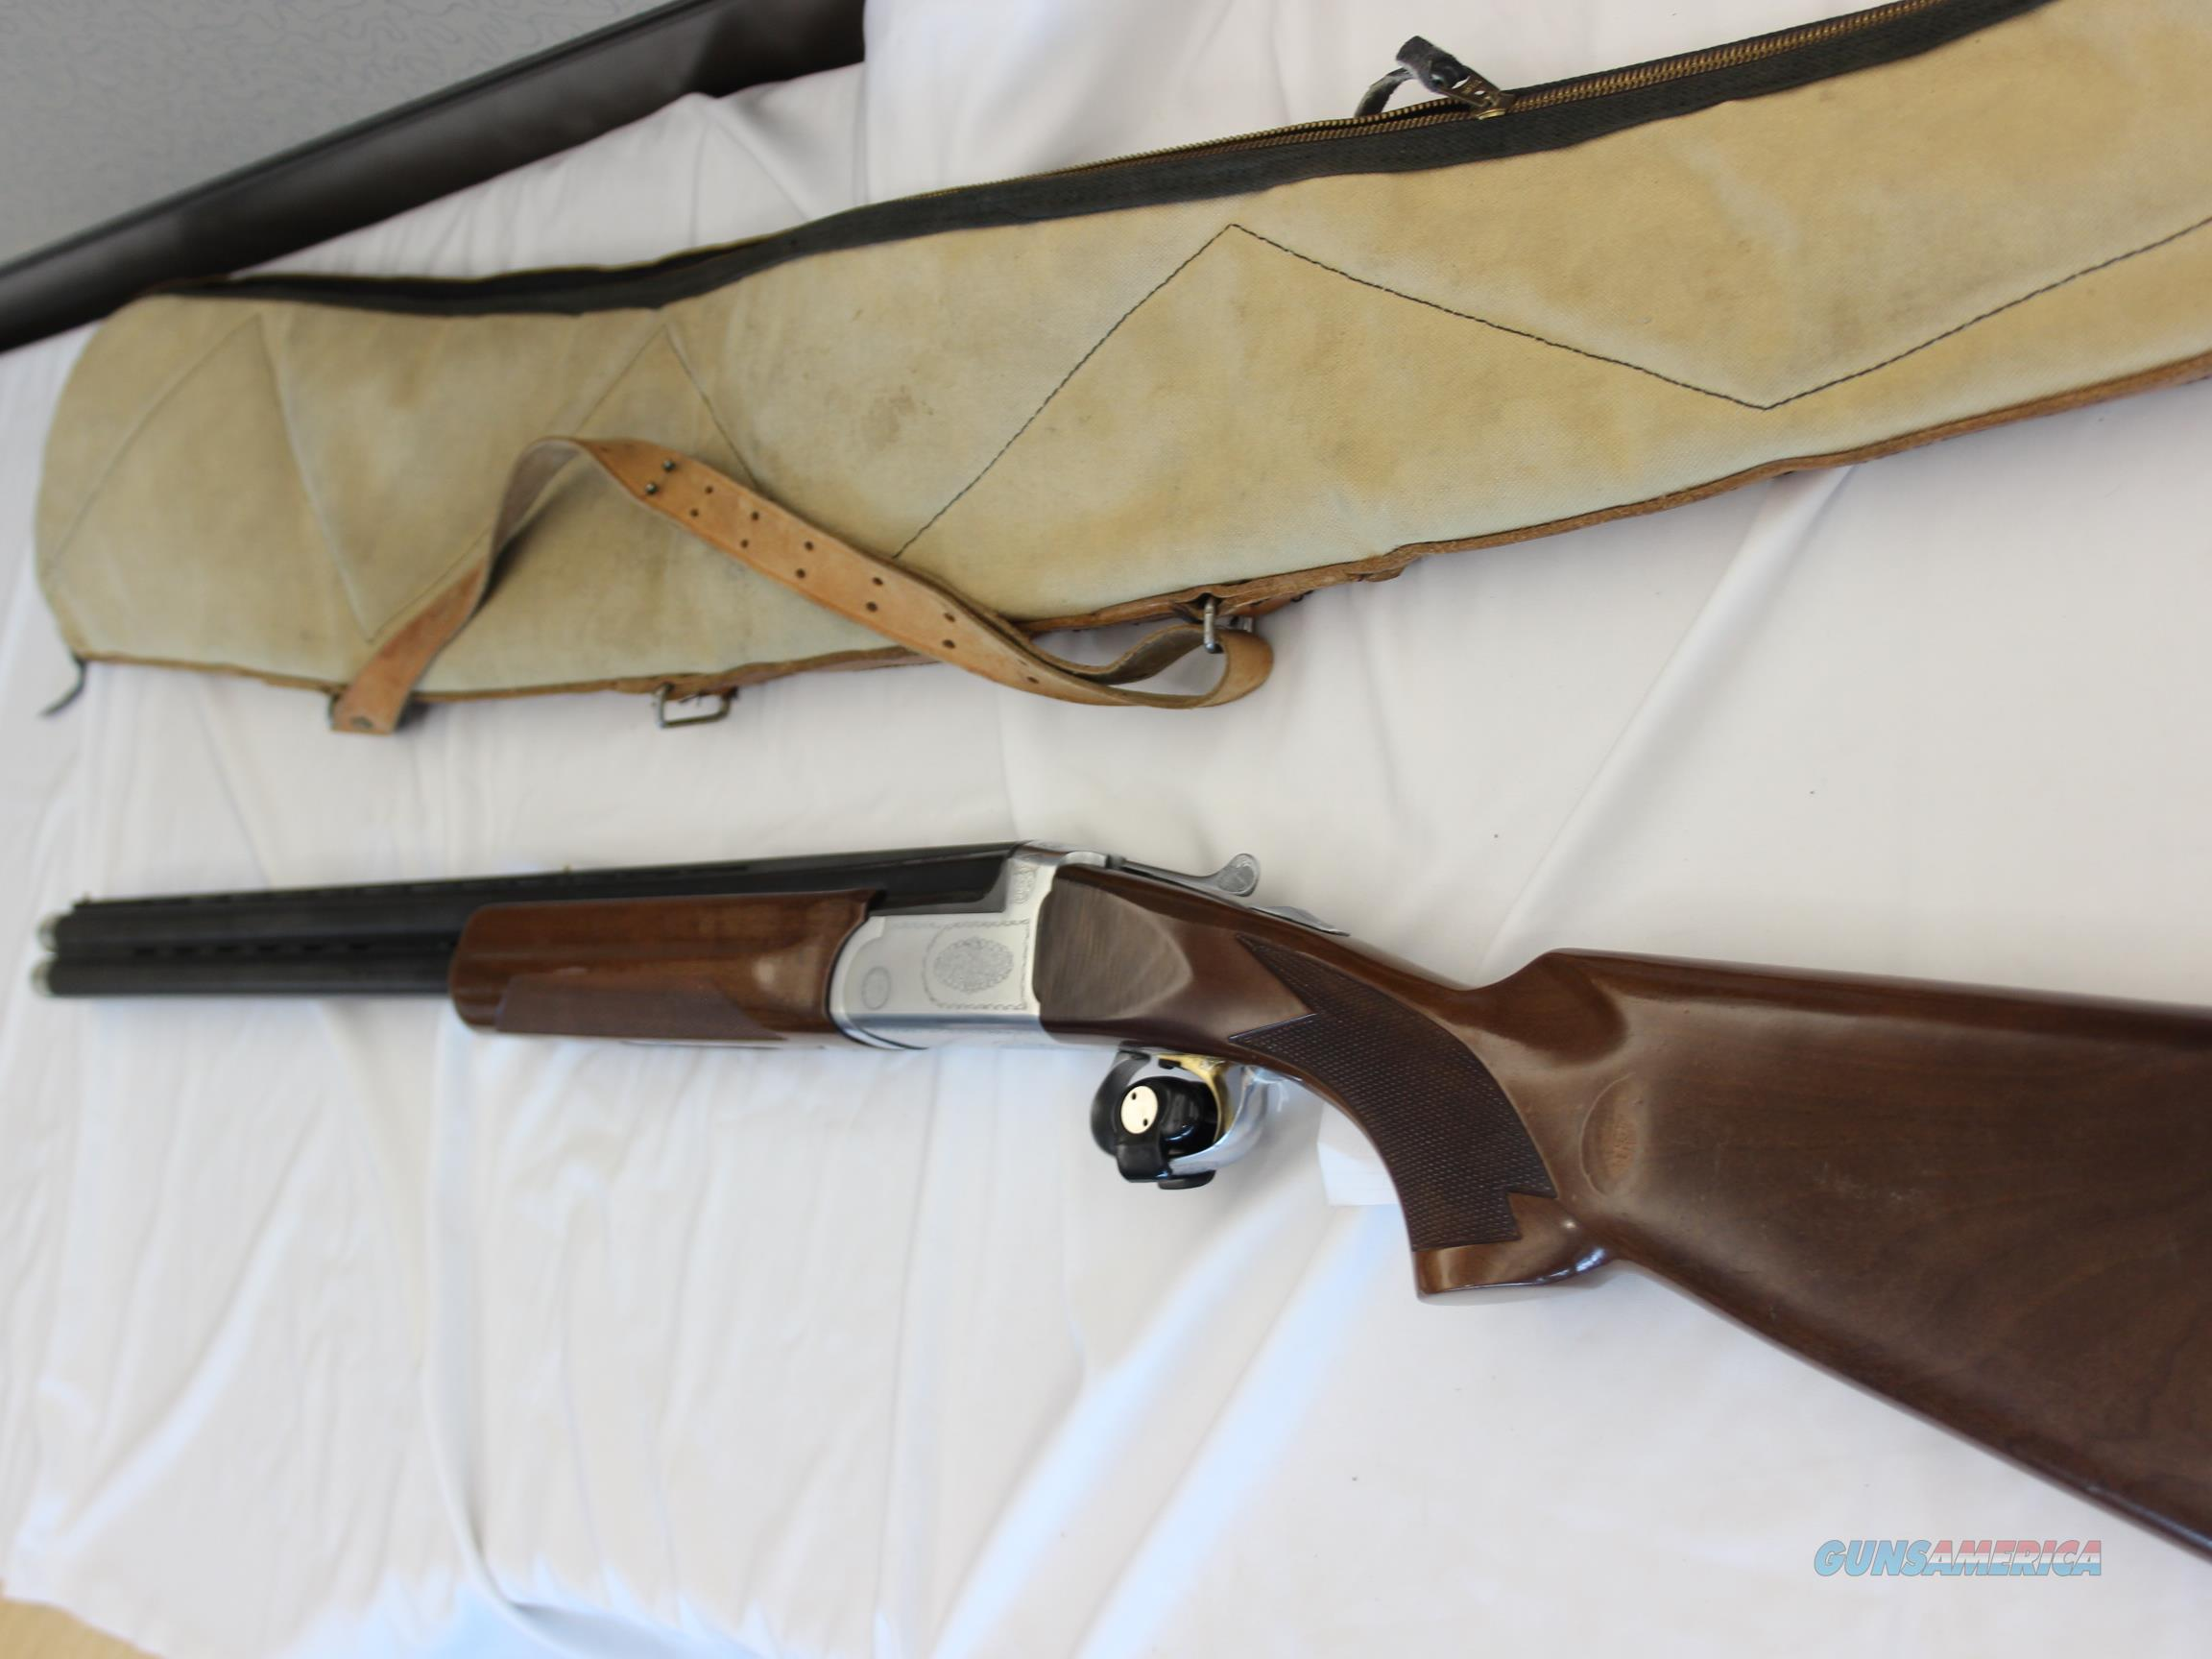 American Arms Silver II Over/Under 12 Gauge Shotgun  Guns > Shotguns > American Arms Shotguns